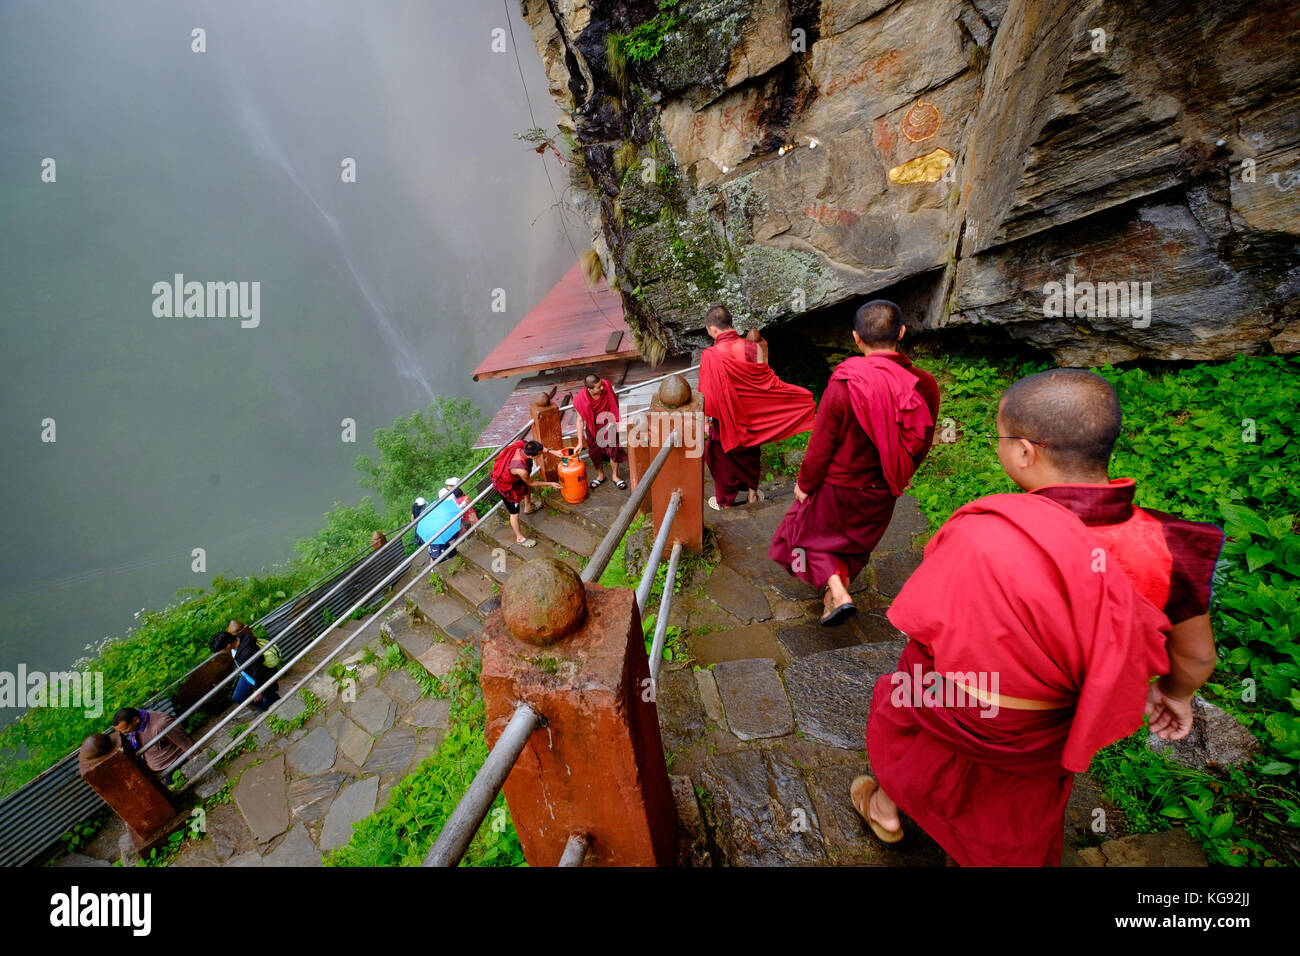 Monks walking the cliffs by Tiger's nest monastery in Bhutan - July 2017 - Stock Image